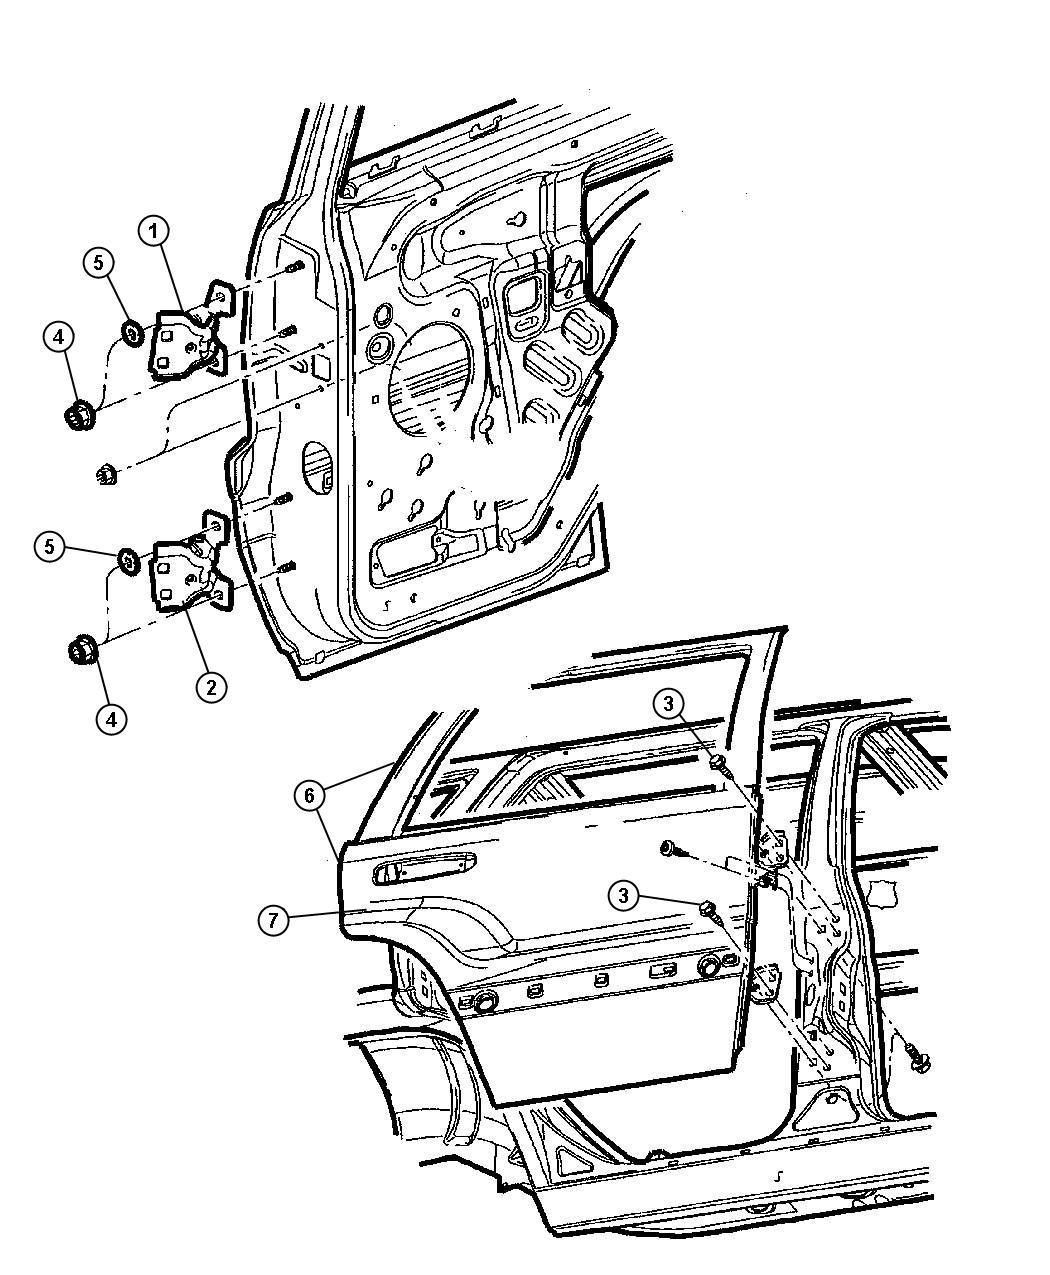 wiring diagram for 2000 dodge grand caravan heating system